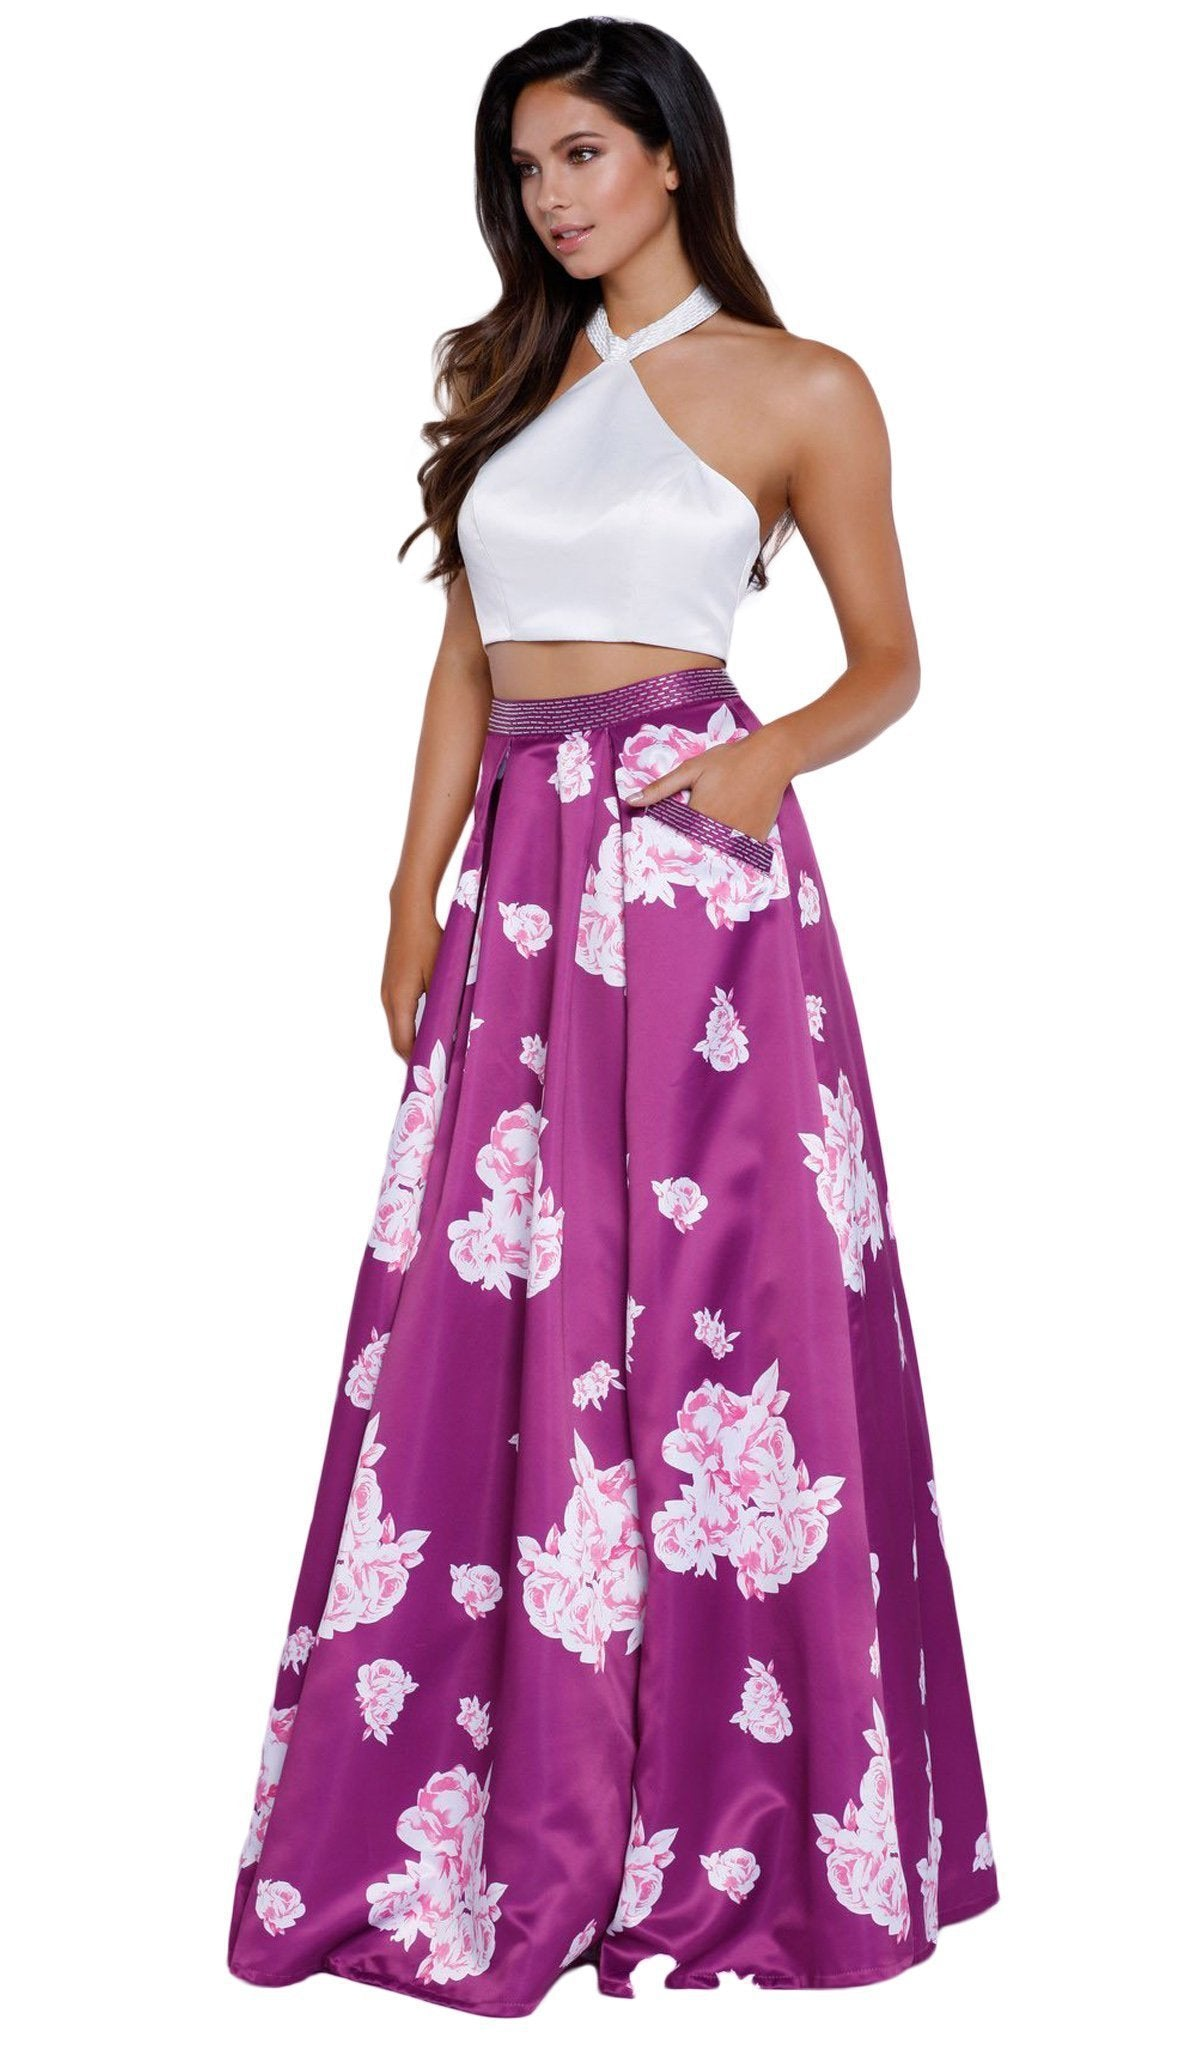 Nox Anabel - Two-piece Halter Floral A-line Evening Dress 8245SC